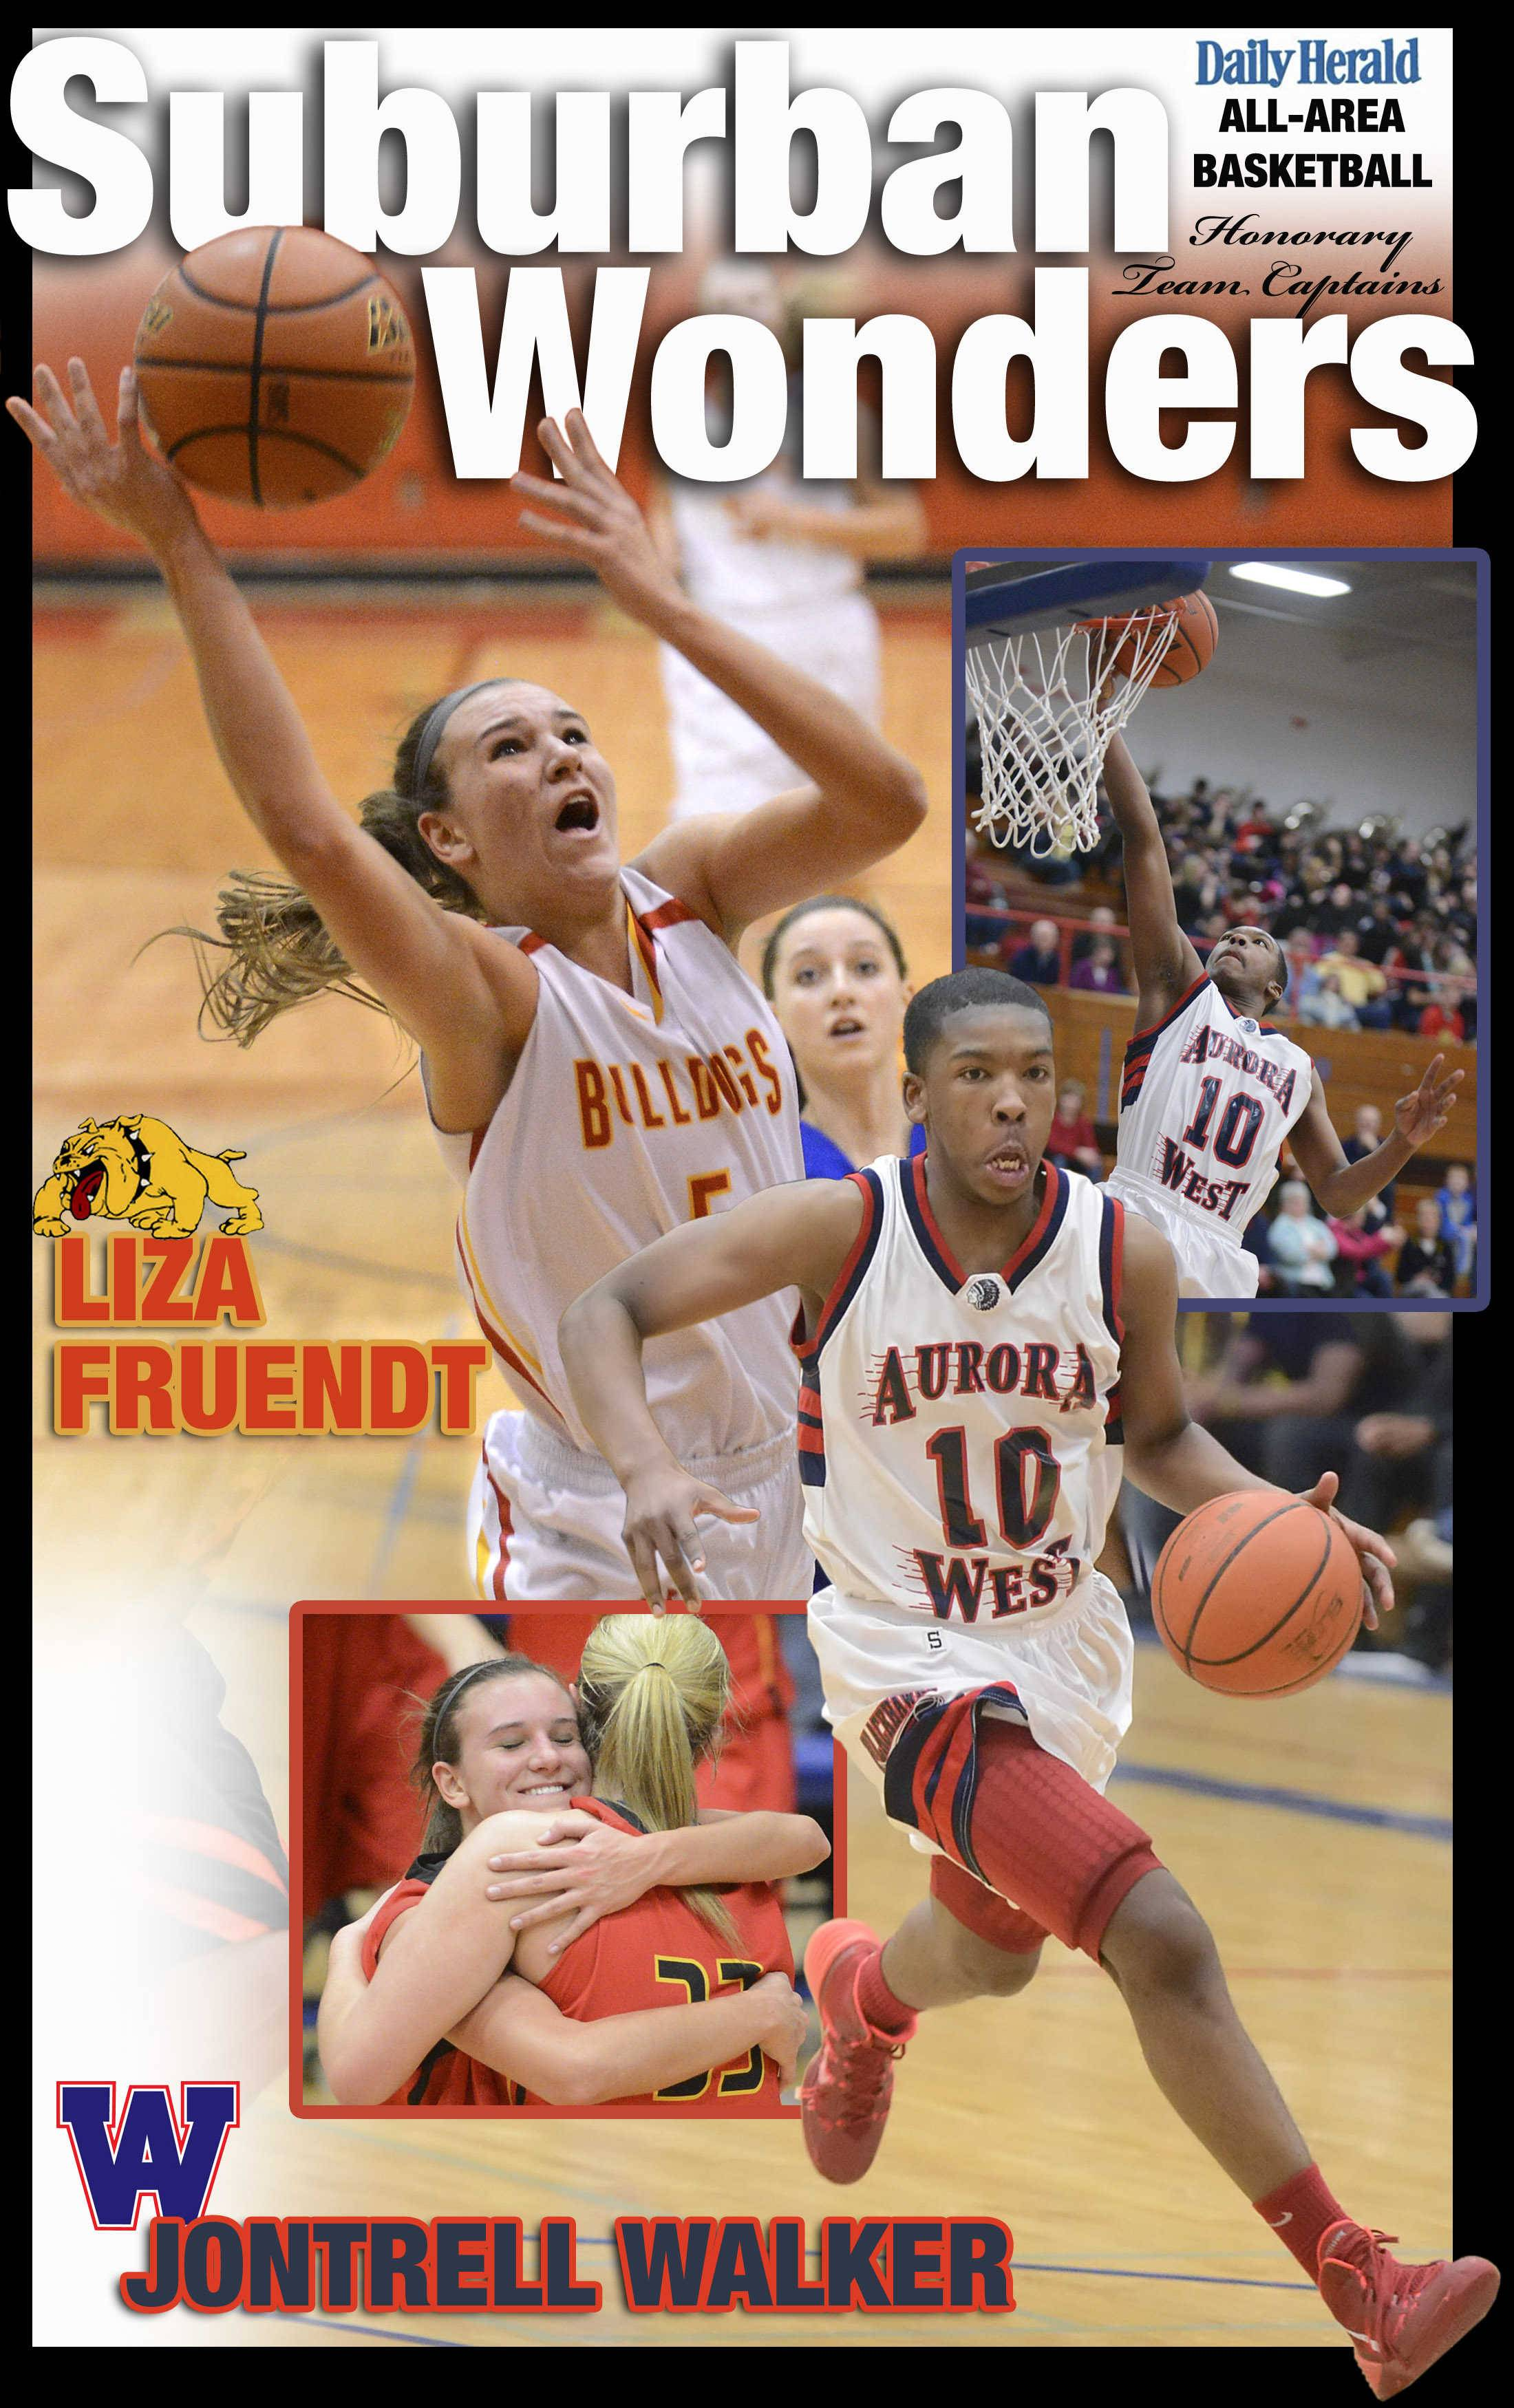 Liza Fruendt of Batavia and  Jontrell Walker of West Aurora are the Daily Herald All-Area honorary team captains for basketball in the Tri-Cities  in 2014.